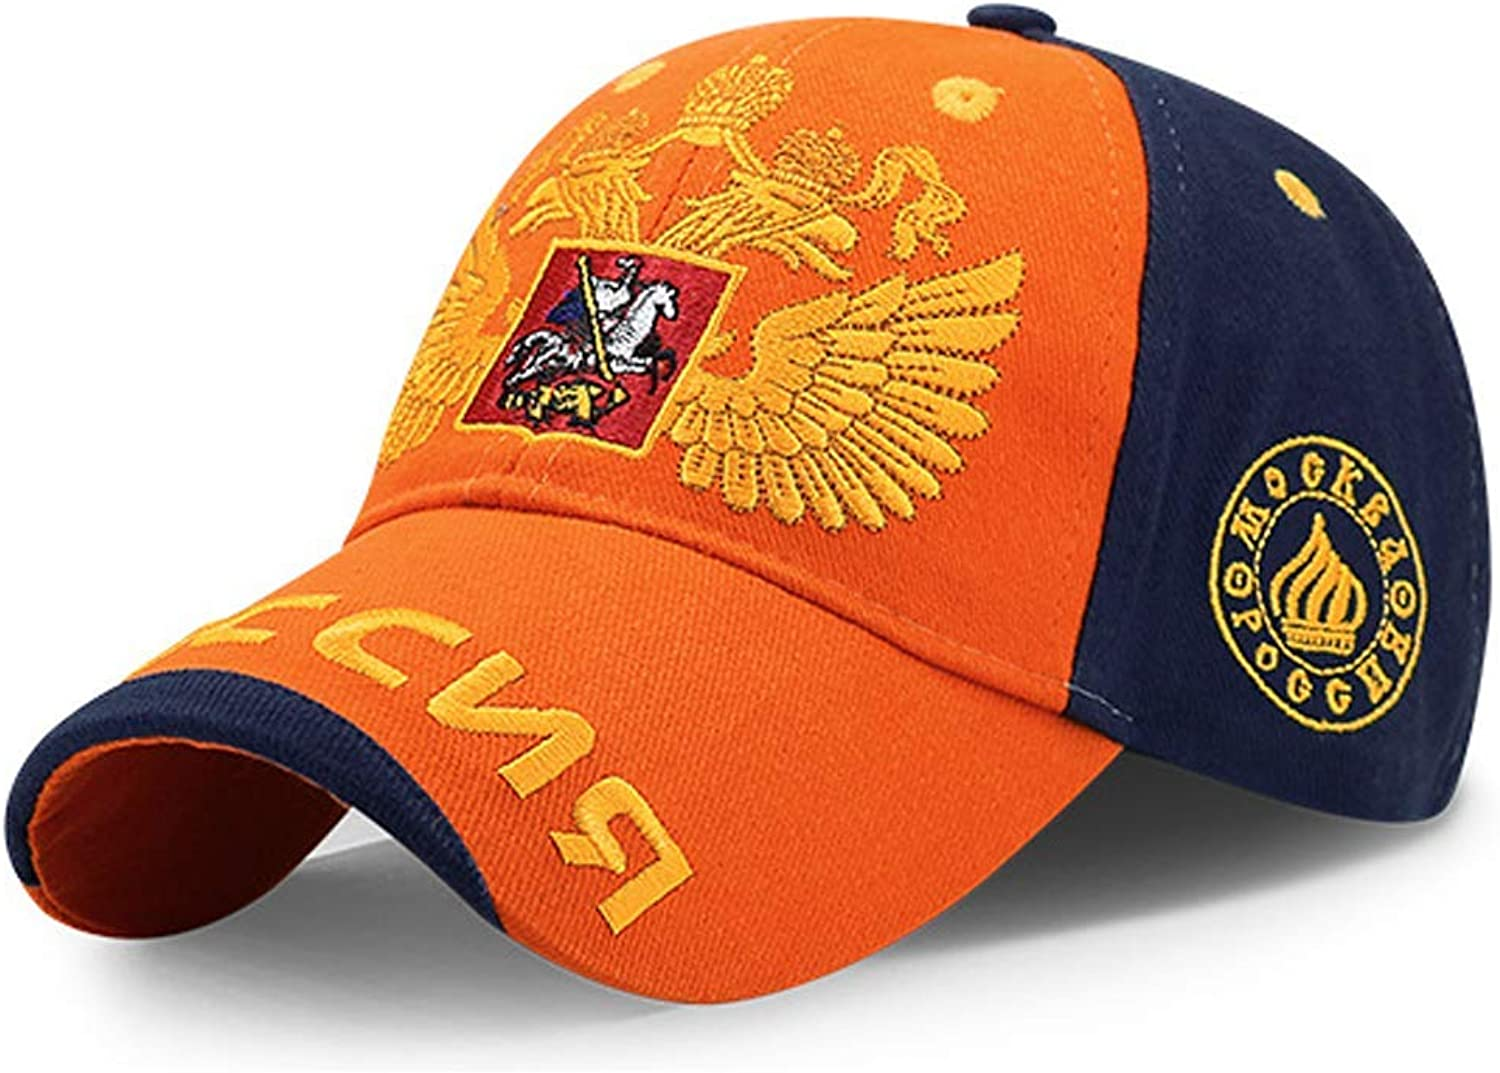 DPAINTouscap Russian hat Embroidery National Emblem hat Baseball Cape Cap Casual hat